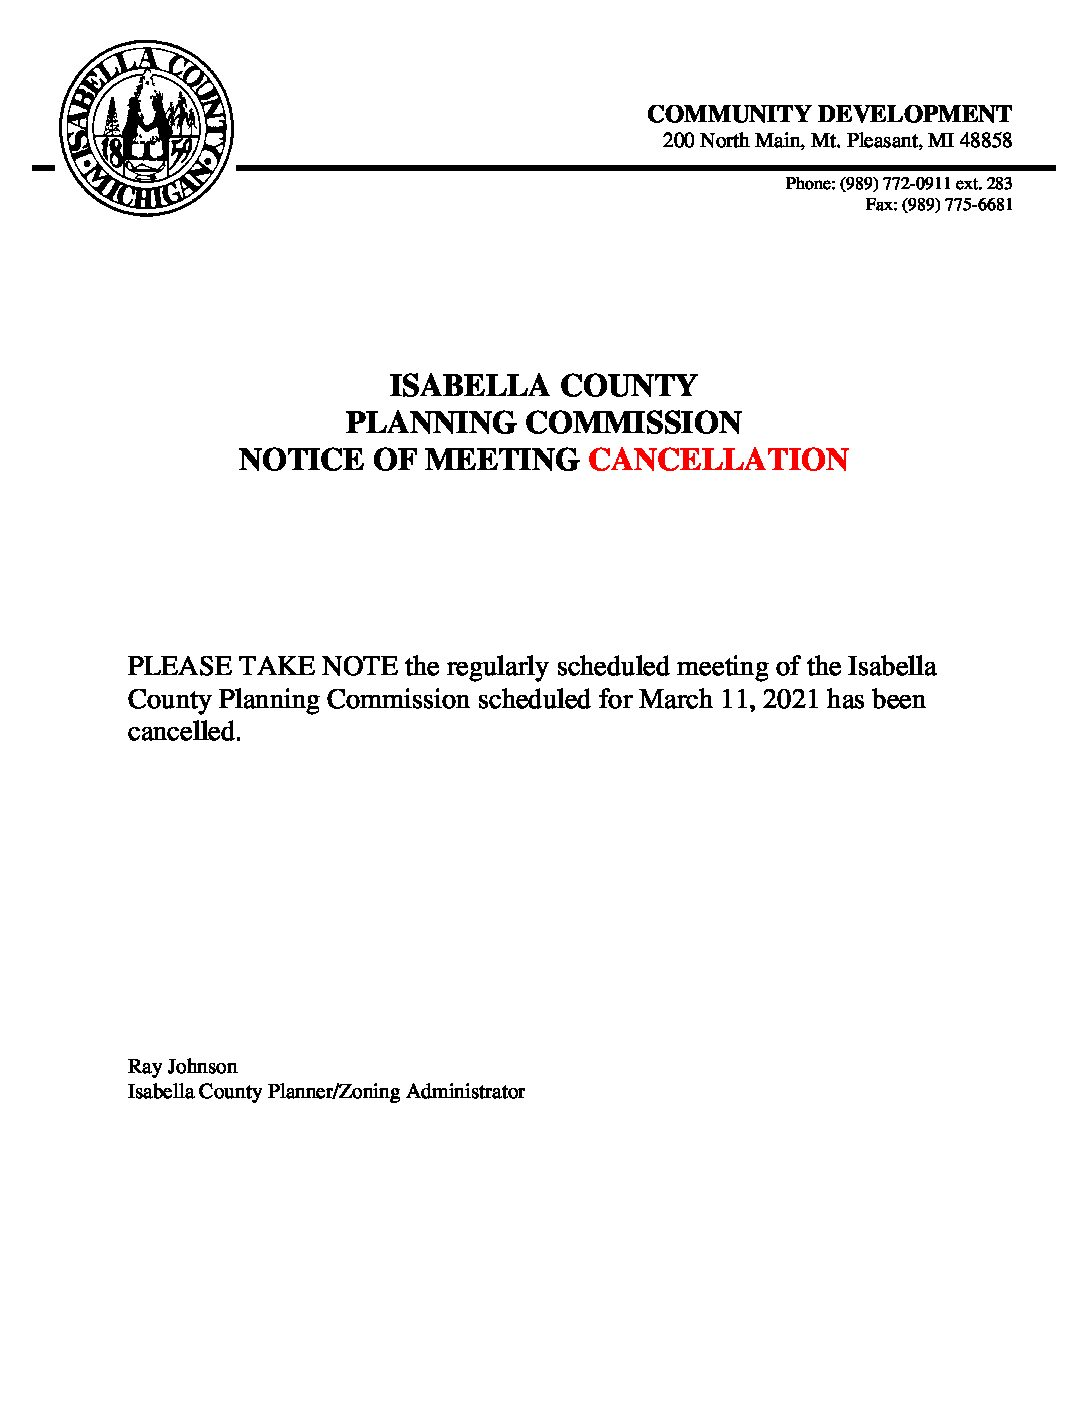 preview image of first page March 11, 2021 Cancellation Notice